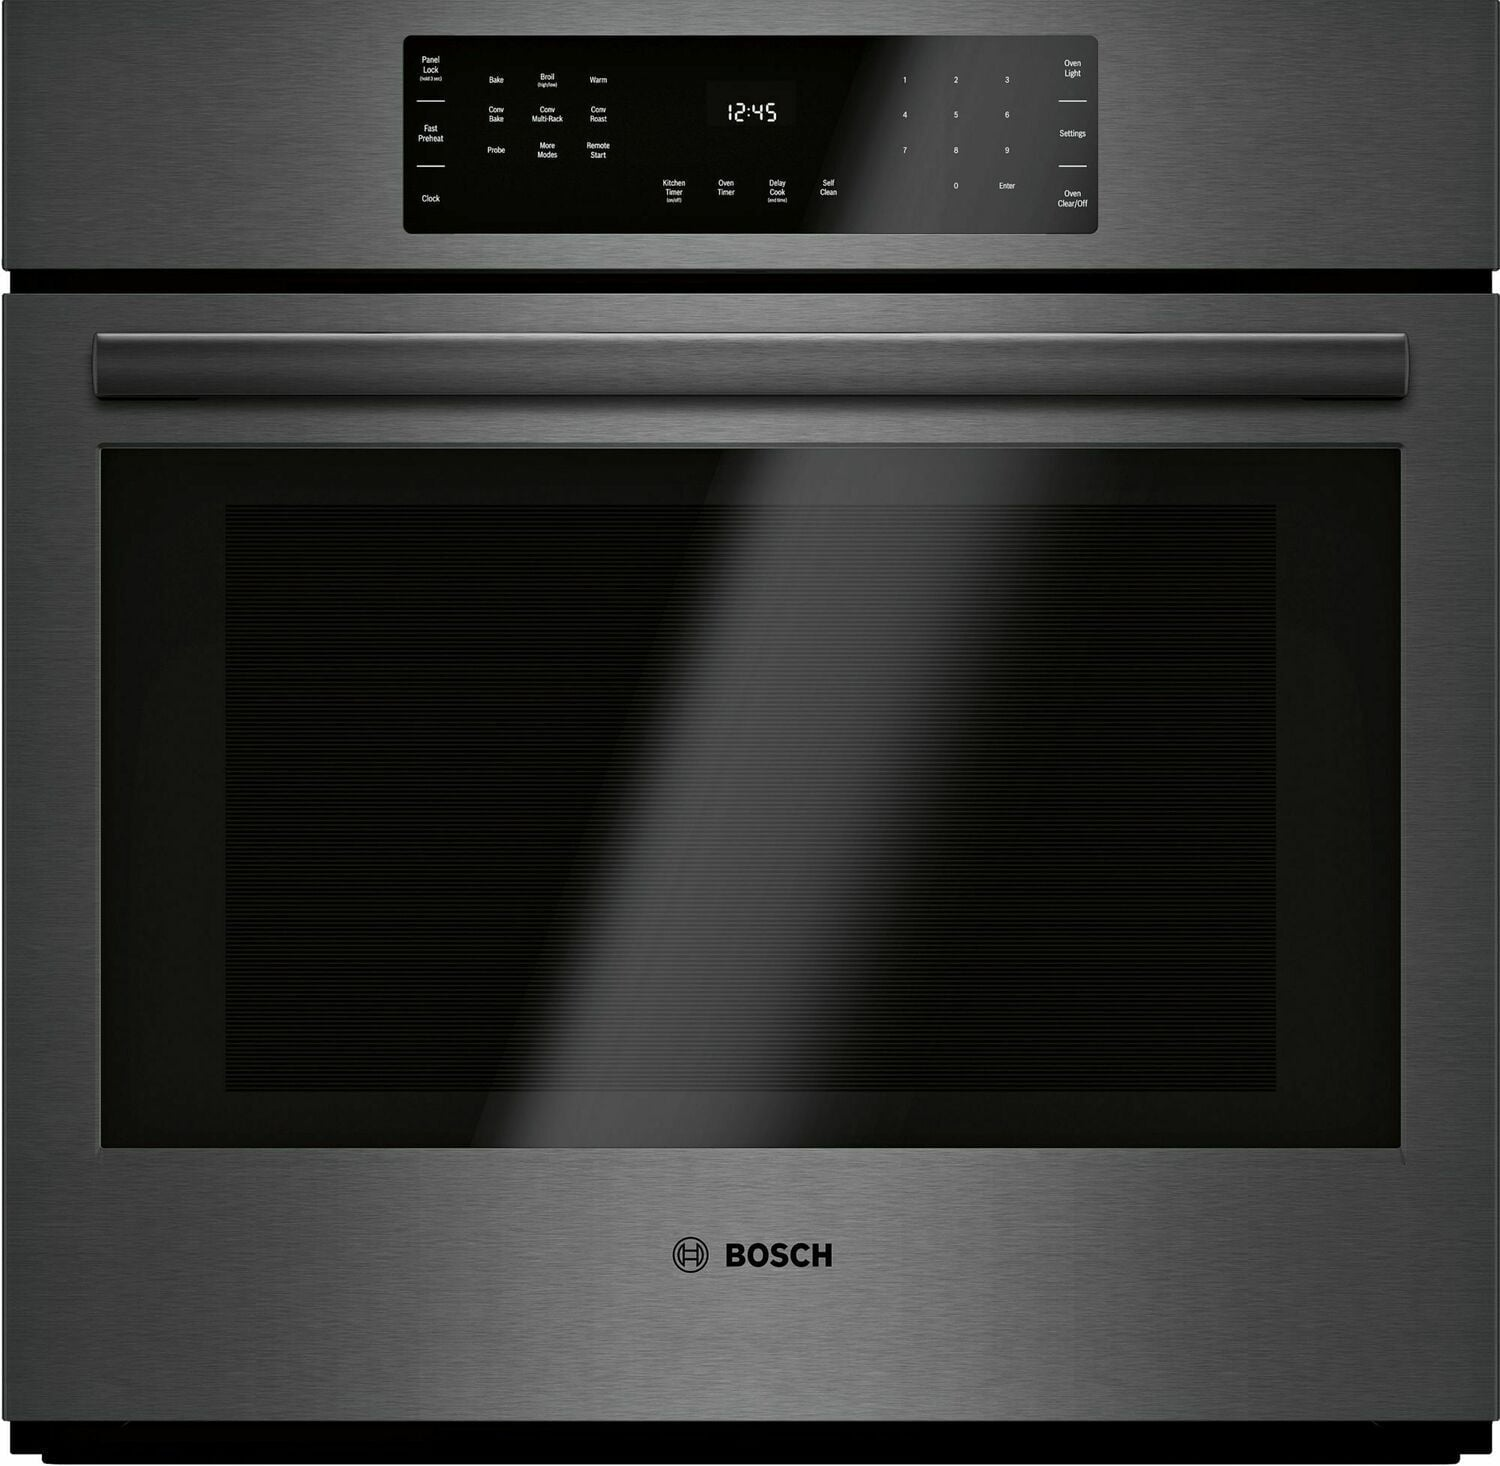 Load image into Gallery viewer, Bosch HBL8443UC 800 Series Single Wall Oven 30'' Black Stainless Steel Hbl8443Uc